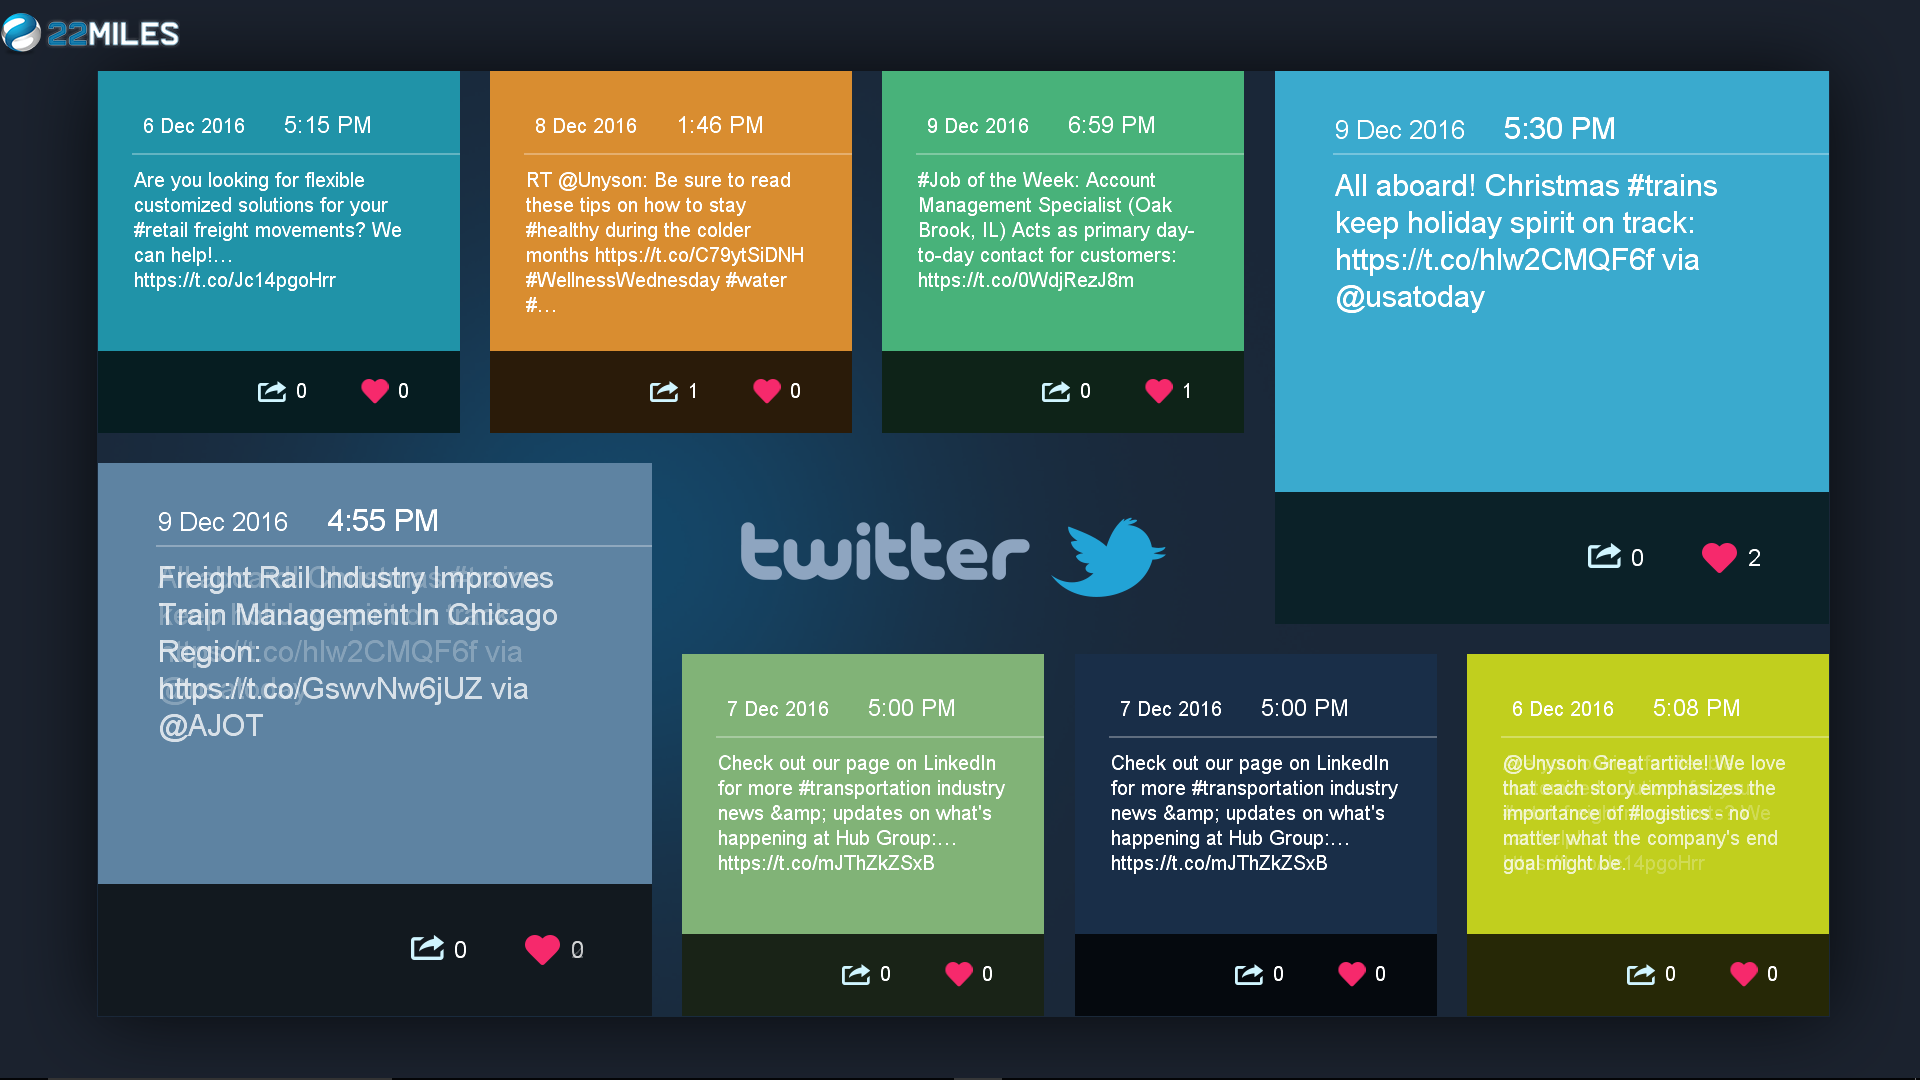 Twitter, Yelp, Foursquare, LinkedIn, and YouTube can be connected for real-time feeds